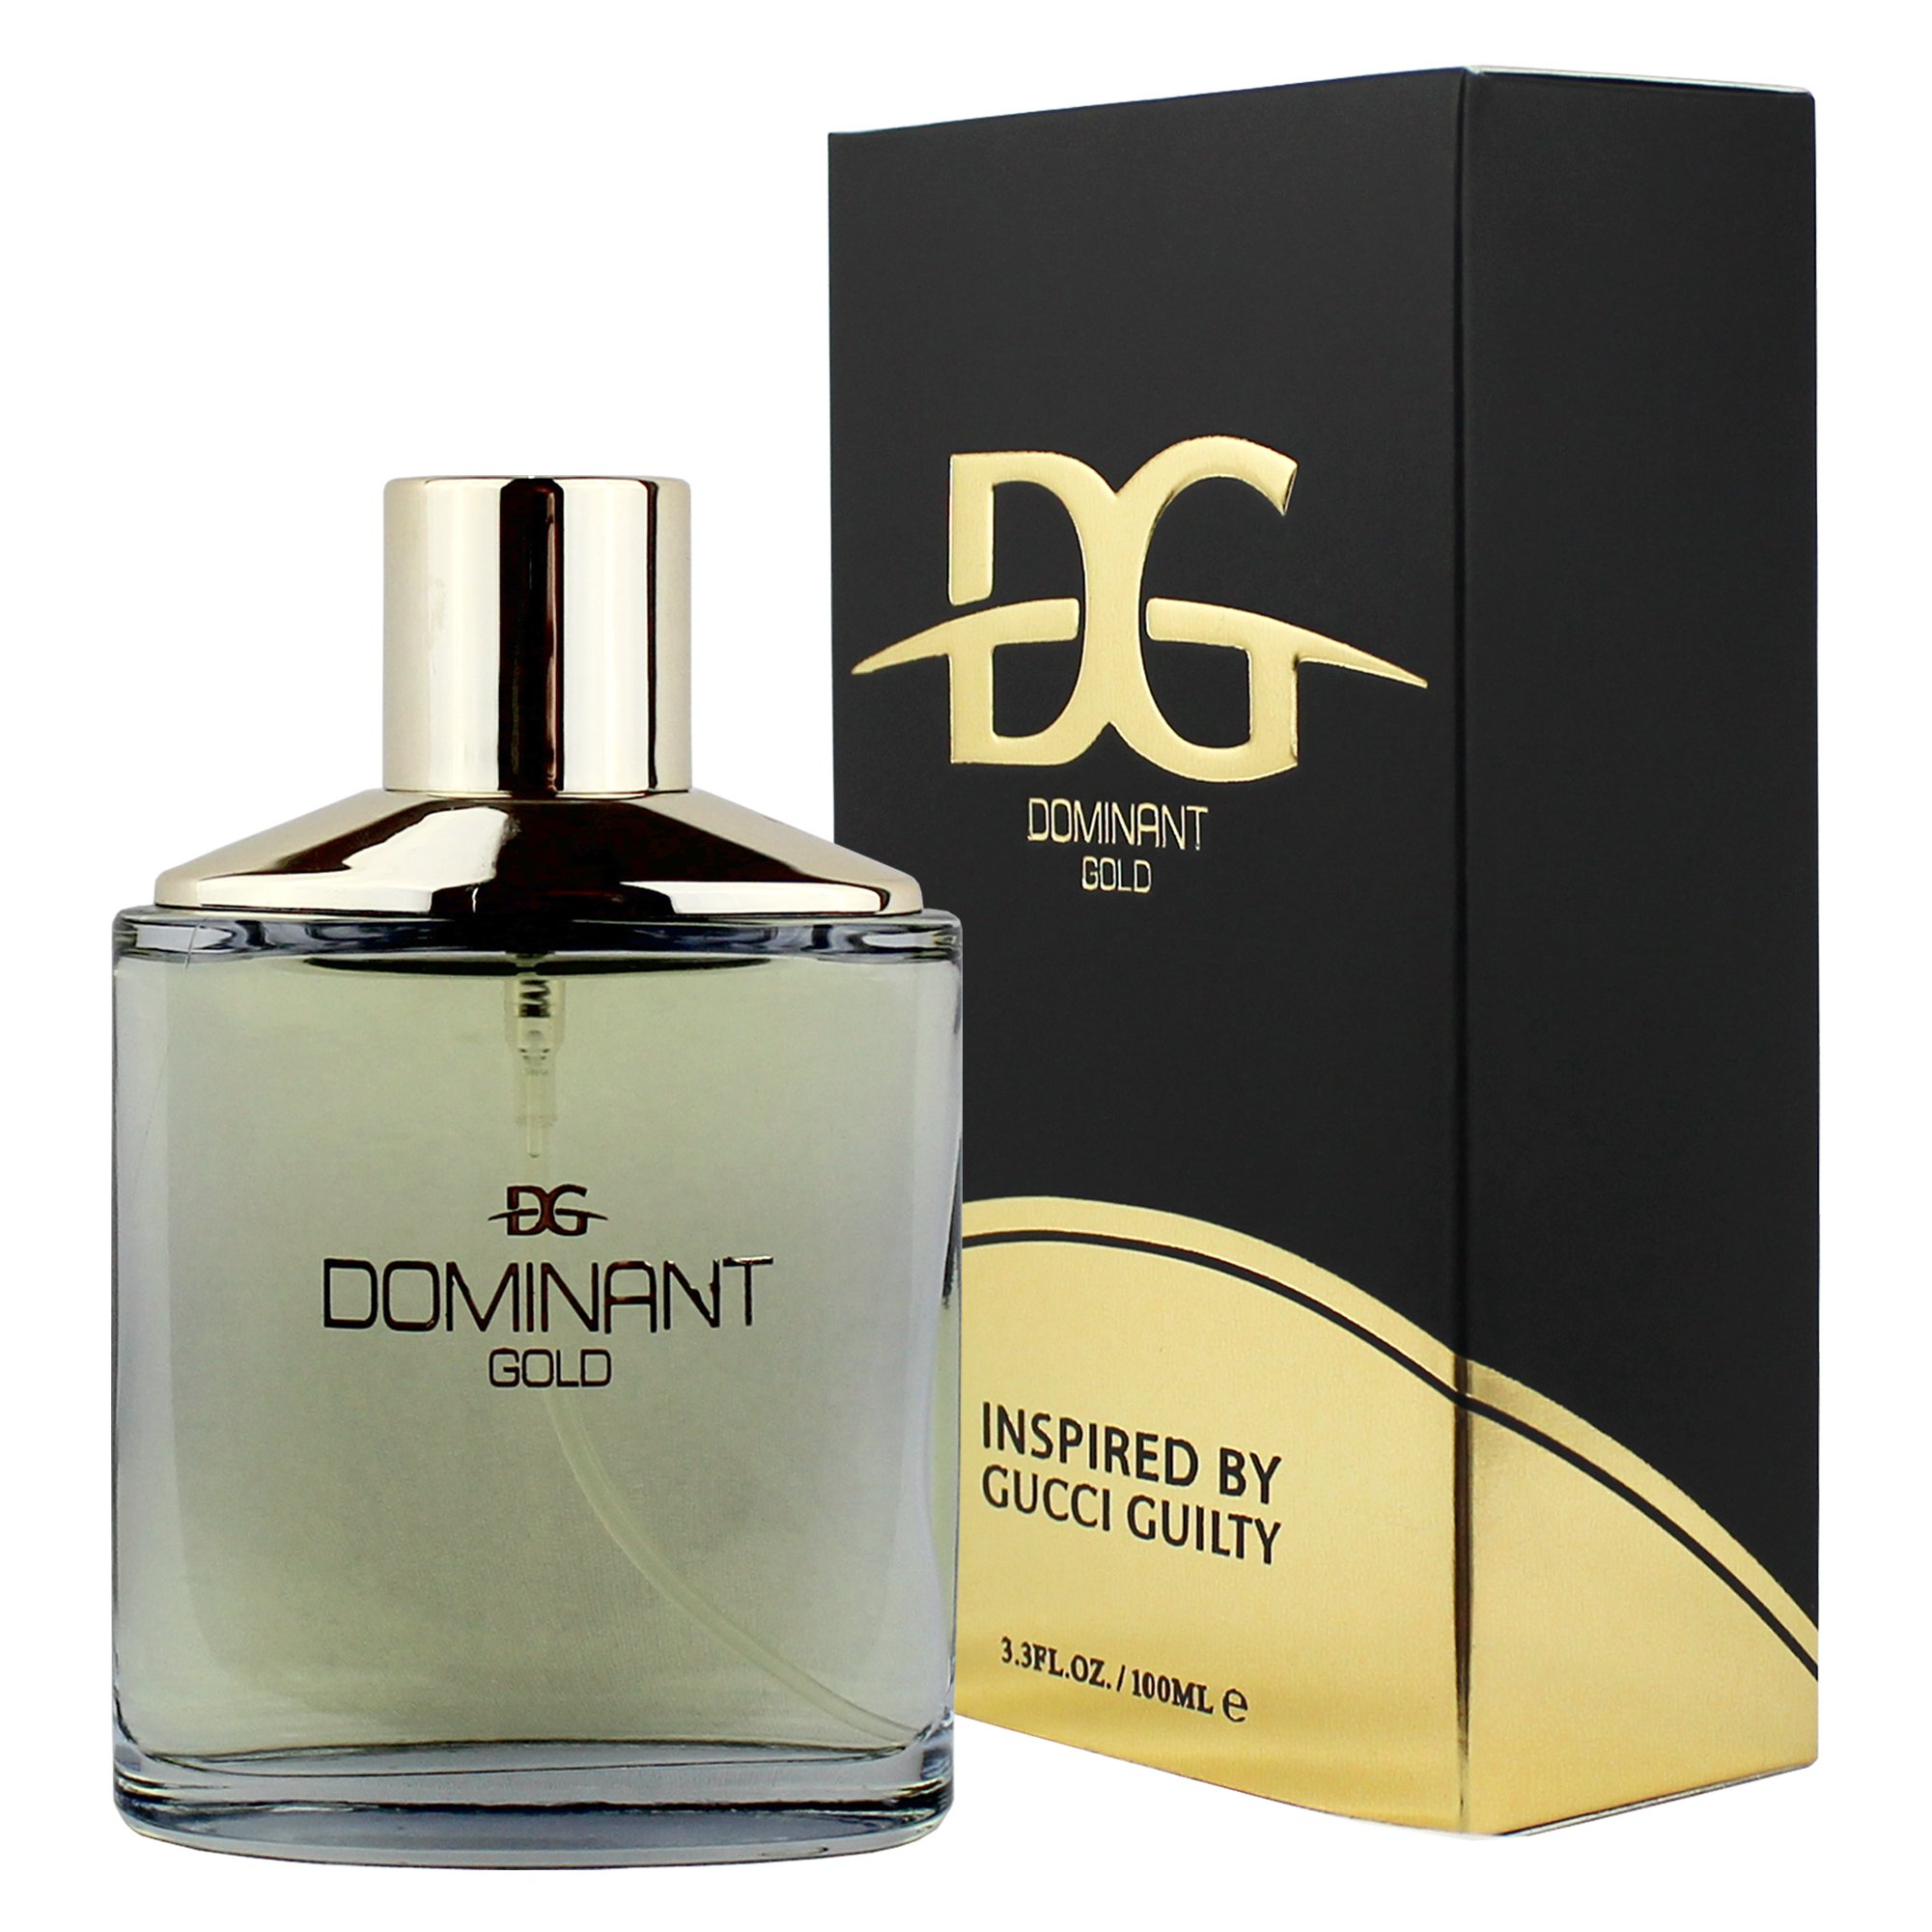 Dominant Gold Eau De Toilette Cologne For Him 3.4 Fl. Oz./ 100 ml